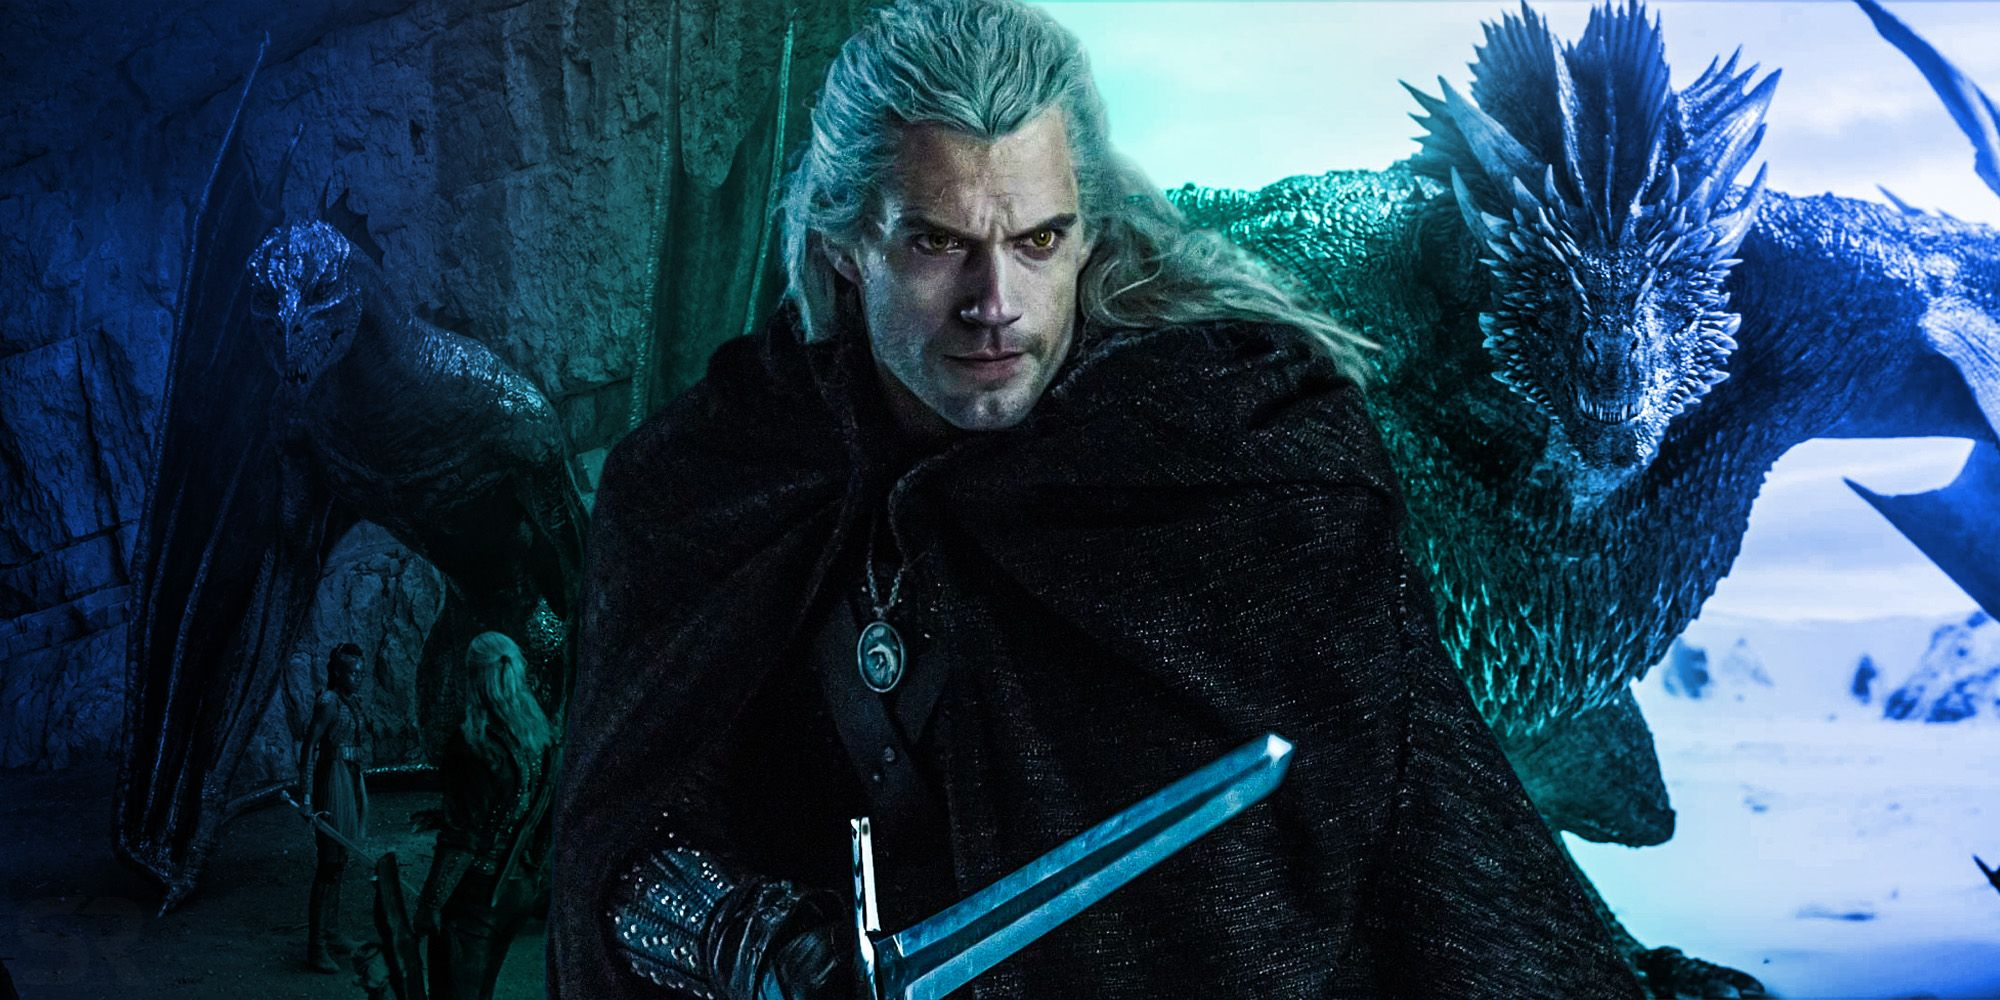 Why The Witcher's Dragons Are The Opposite of Game of Thrones